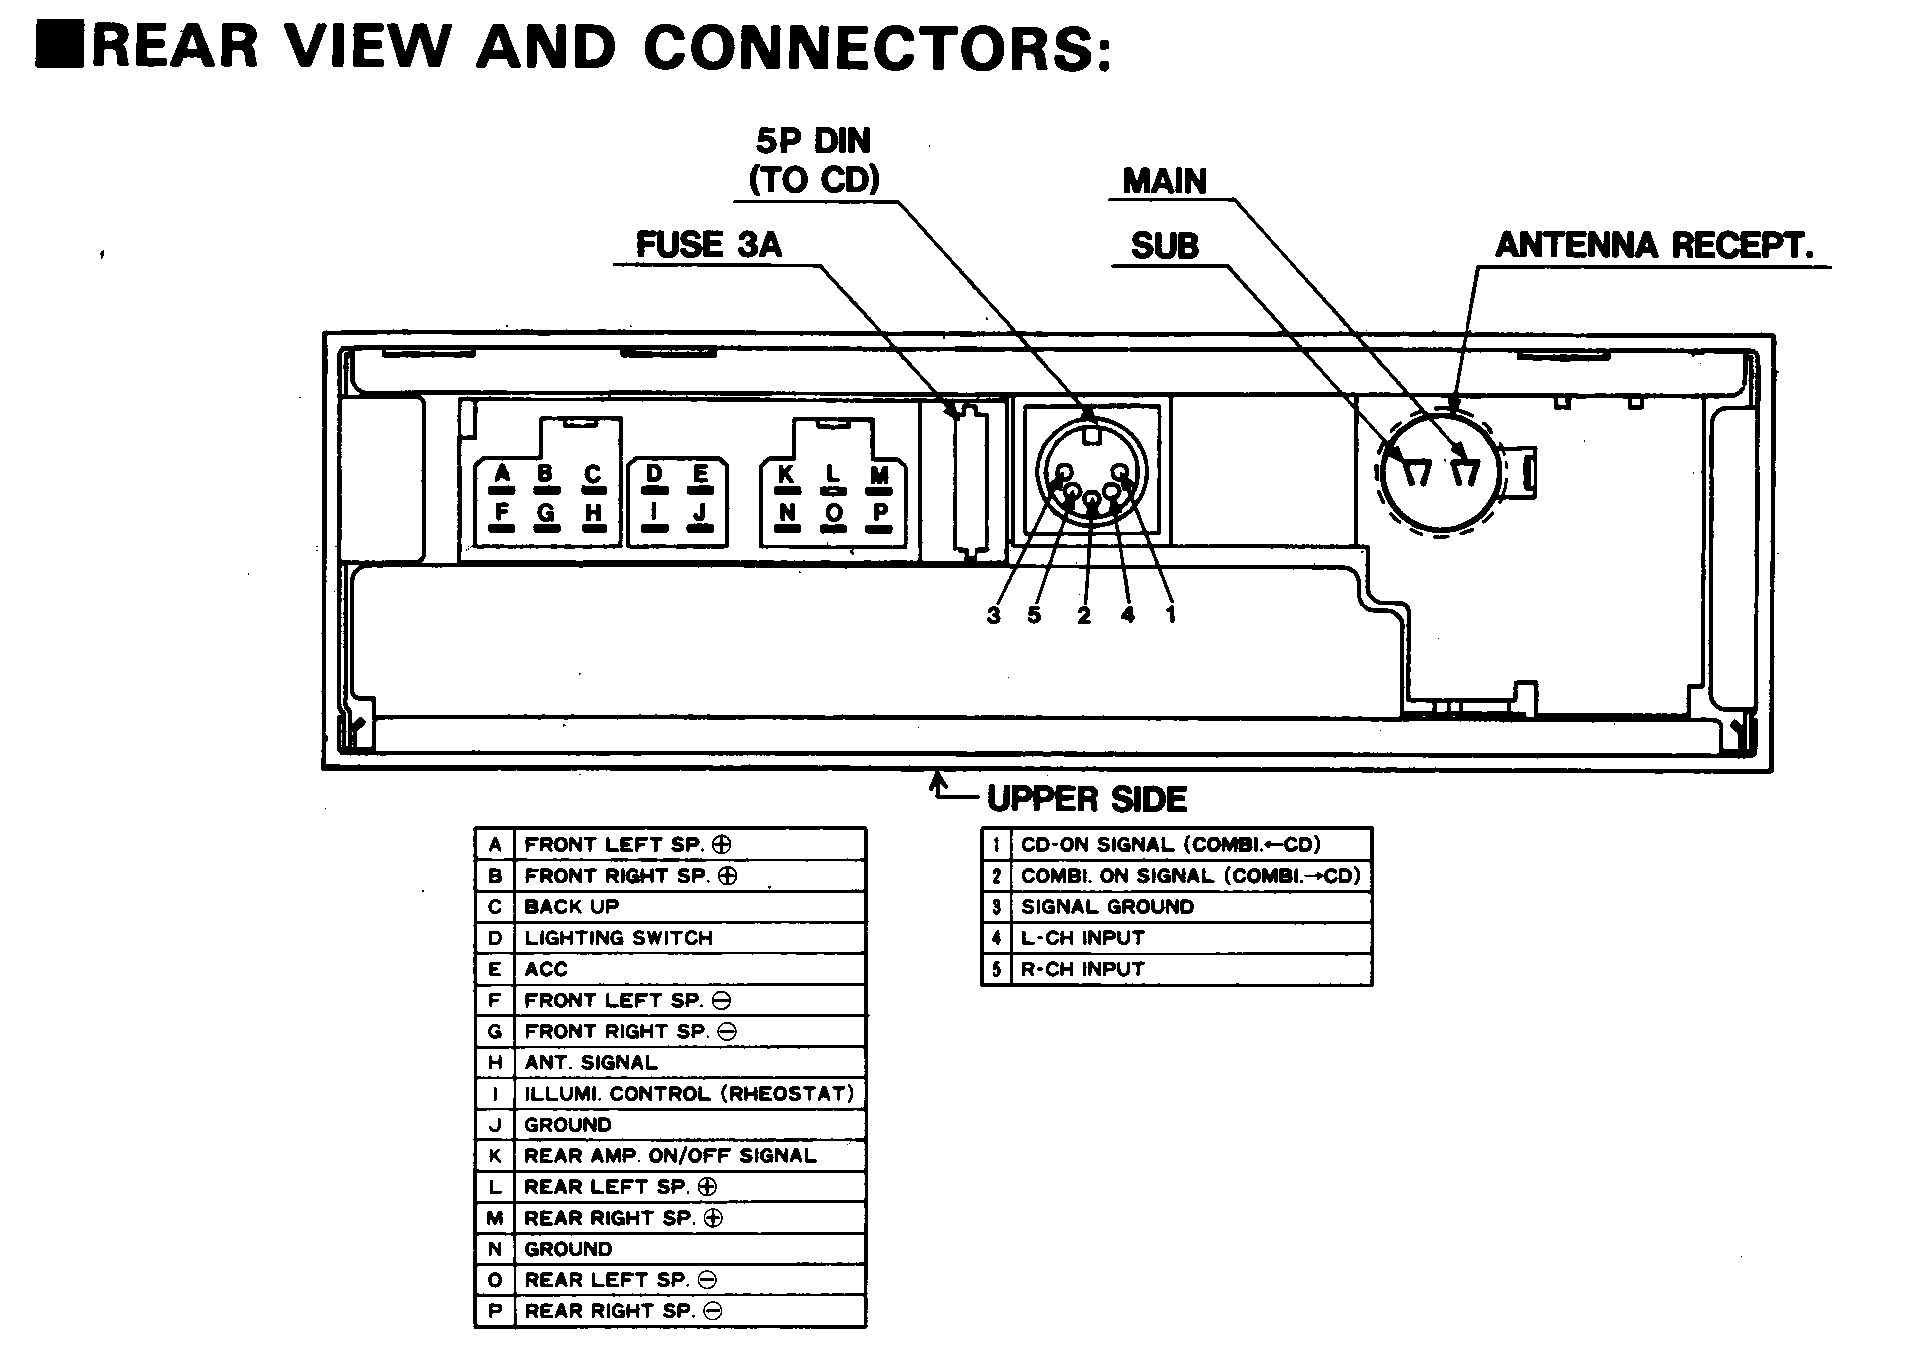 WireHarnessNis03180201?resize=665%2C475 diagrams 512507 2000 nissan frontier wiring diagram where can i 2004 Ford Explorer Stereo Wire Harness at gsmportal.co